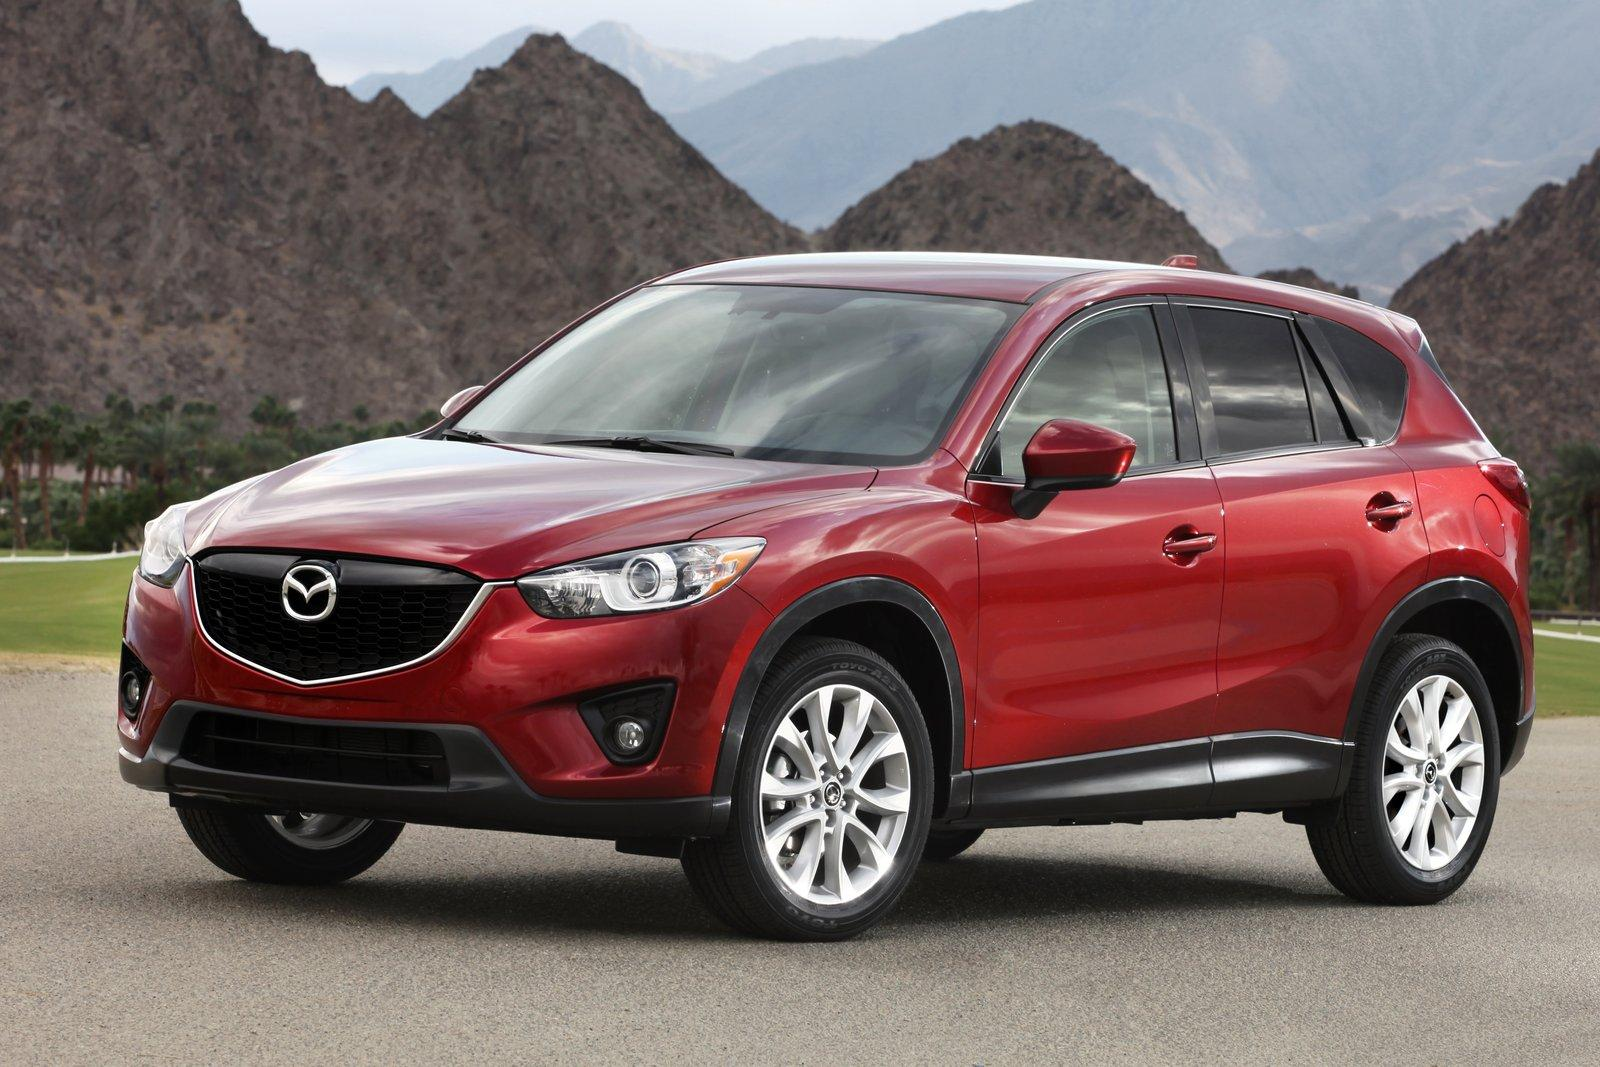 2013 mazda cx 5 featuring skyactiv technology offers environmentally friendly fun. Black Bedroom Furniture Sets. Home Design Ideas